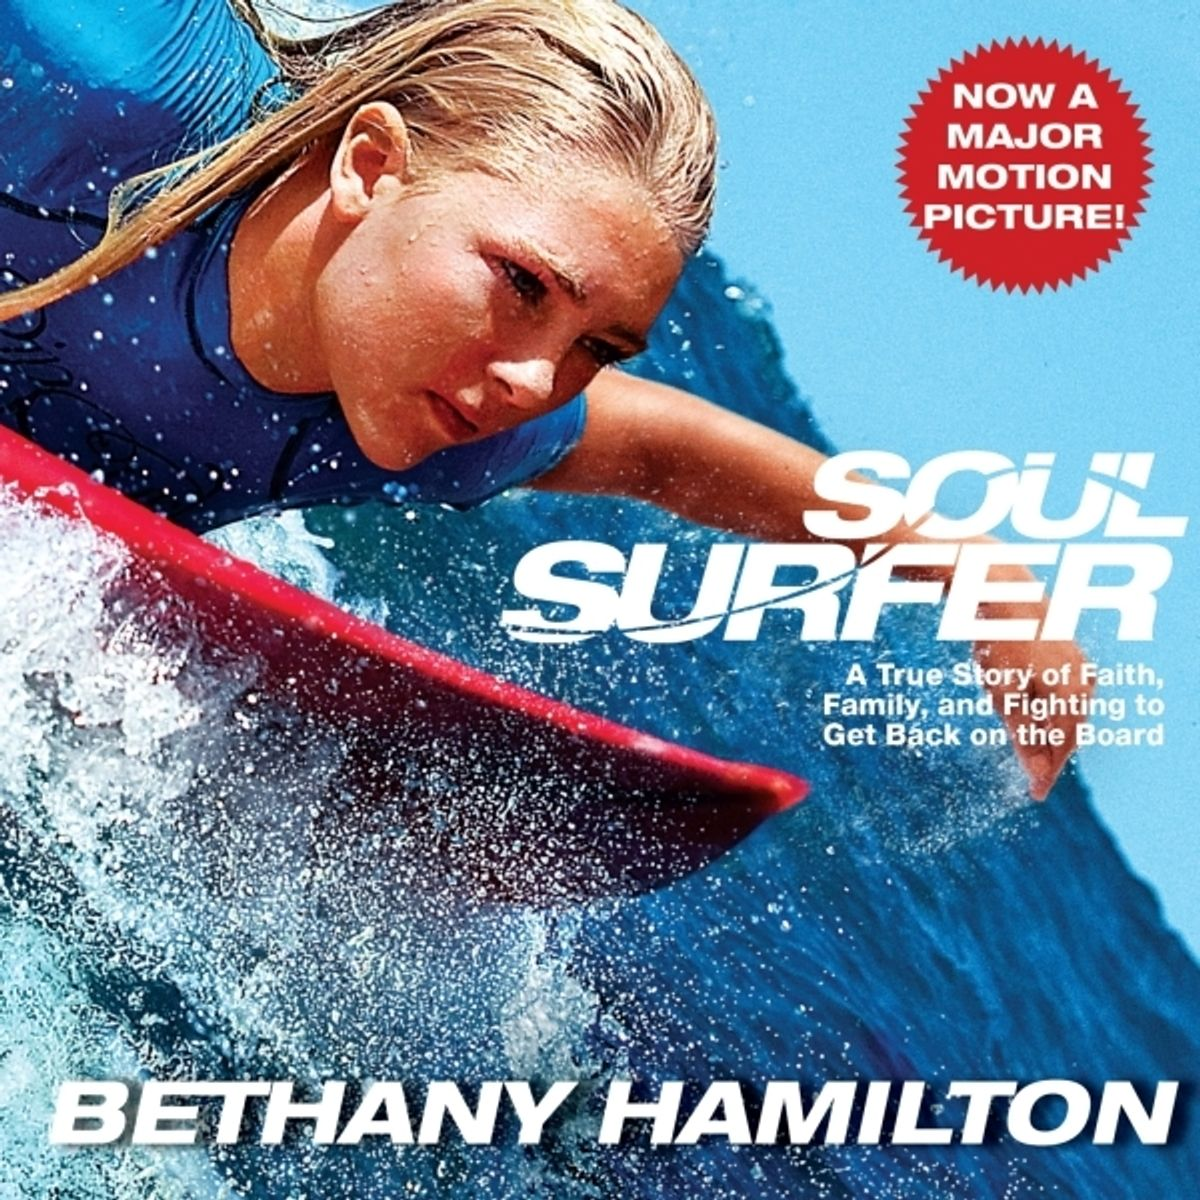 Soul Surfer Audiobook by Bethany Hamilton - 9781608148356 ...